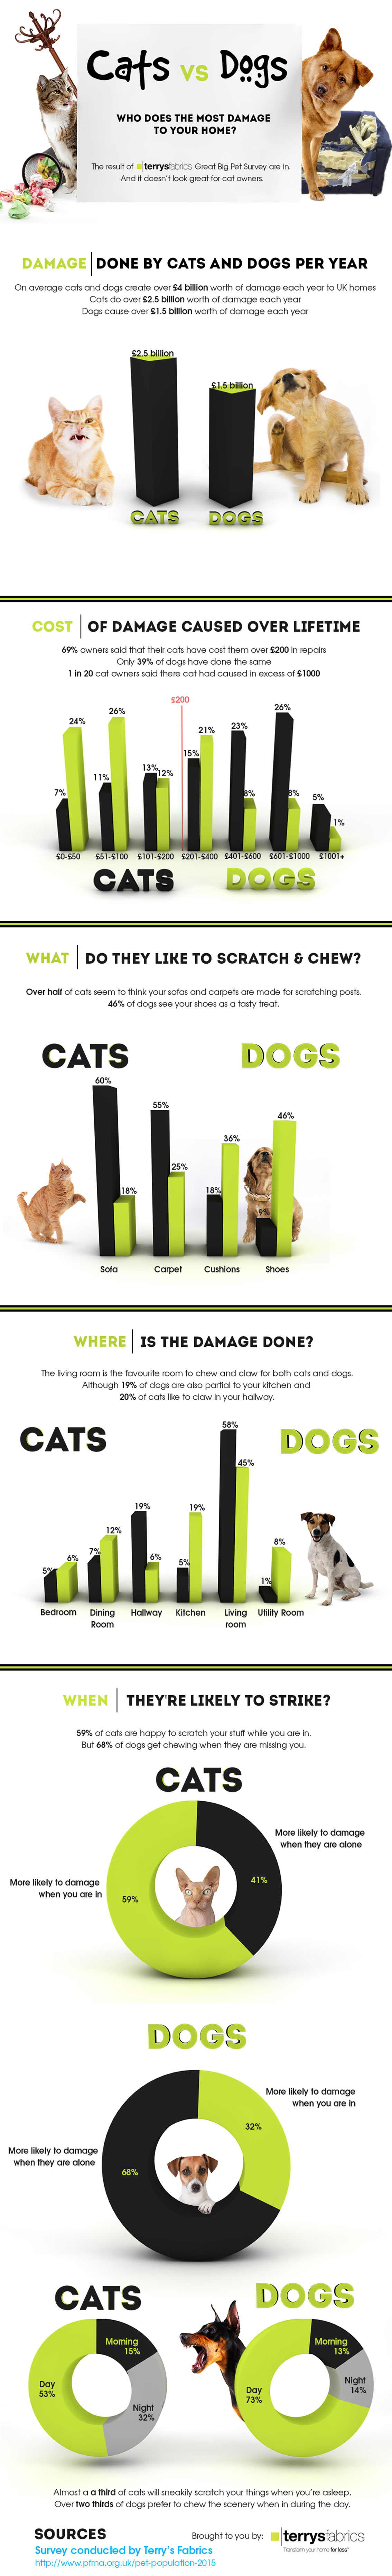 Cats or Dogs Who Does the Most Damage to Your Home - Pet Infographic